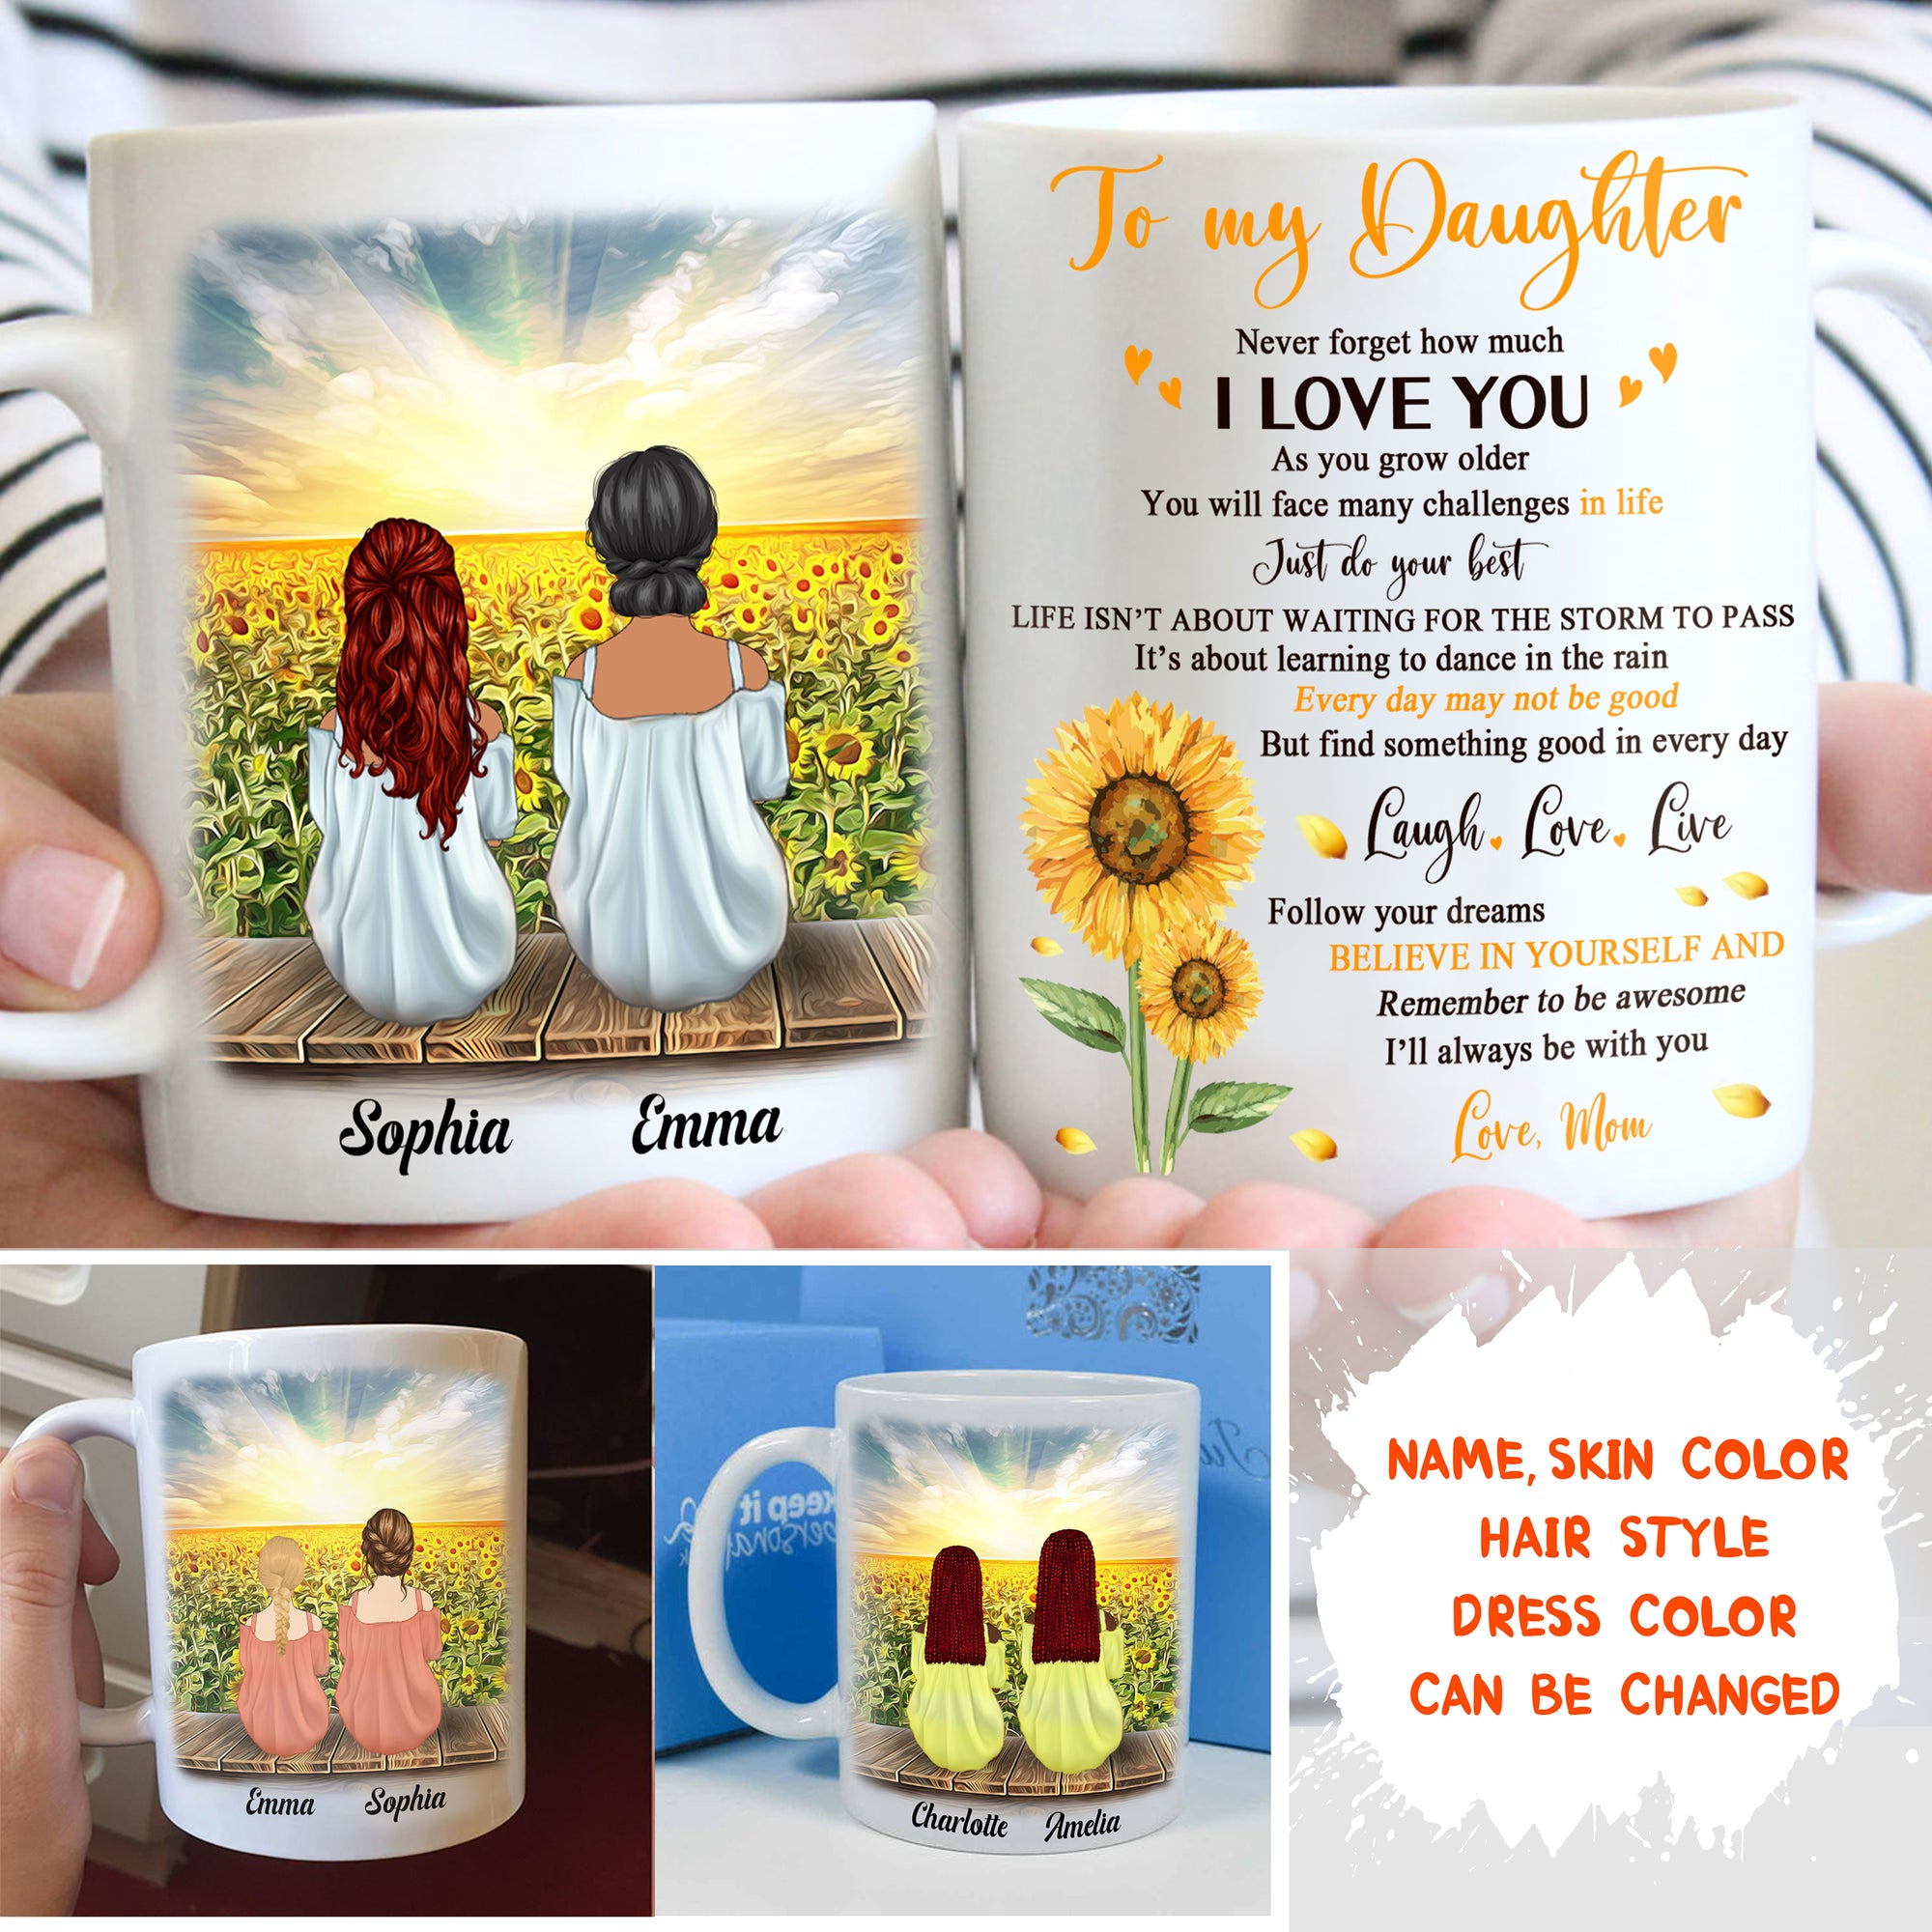 Personalized Custom Coffee Mug – Never Forget How Much I love You - Gift For Adult Daughter From Mom, Sunflower Mug, Birthday Gifts - 7336